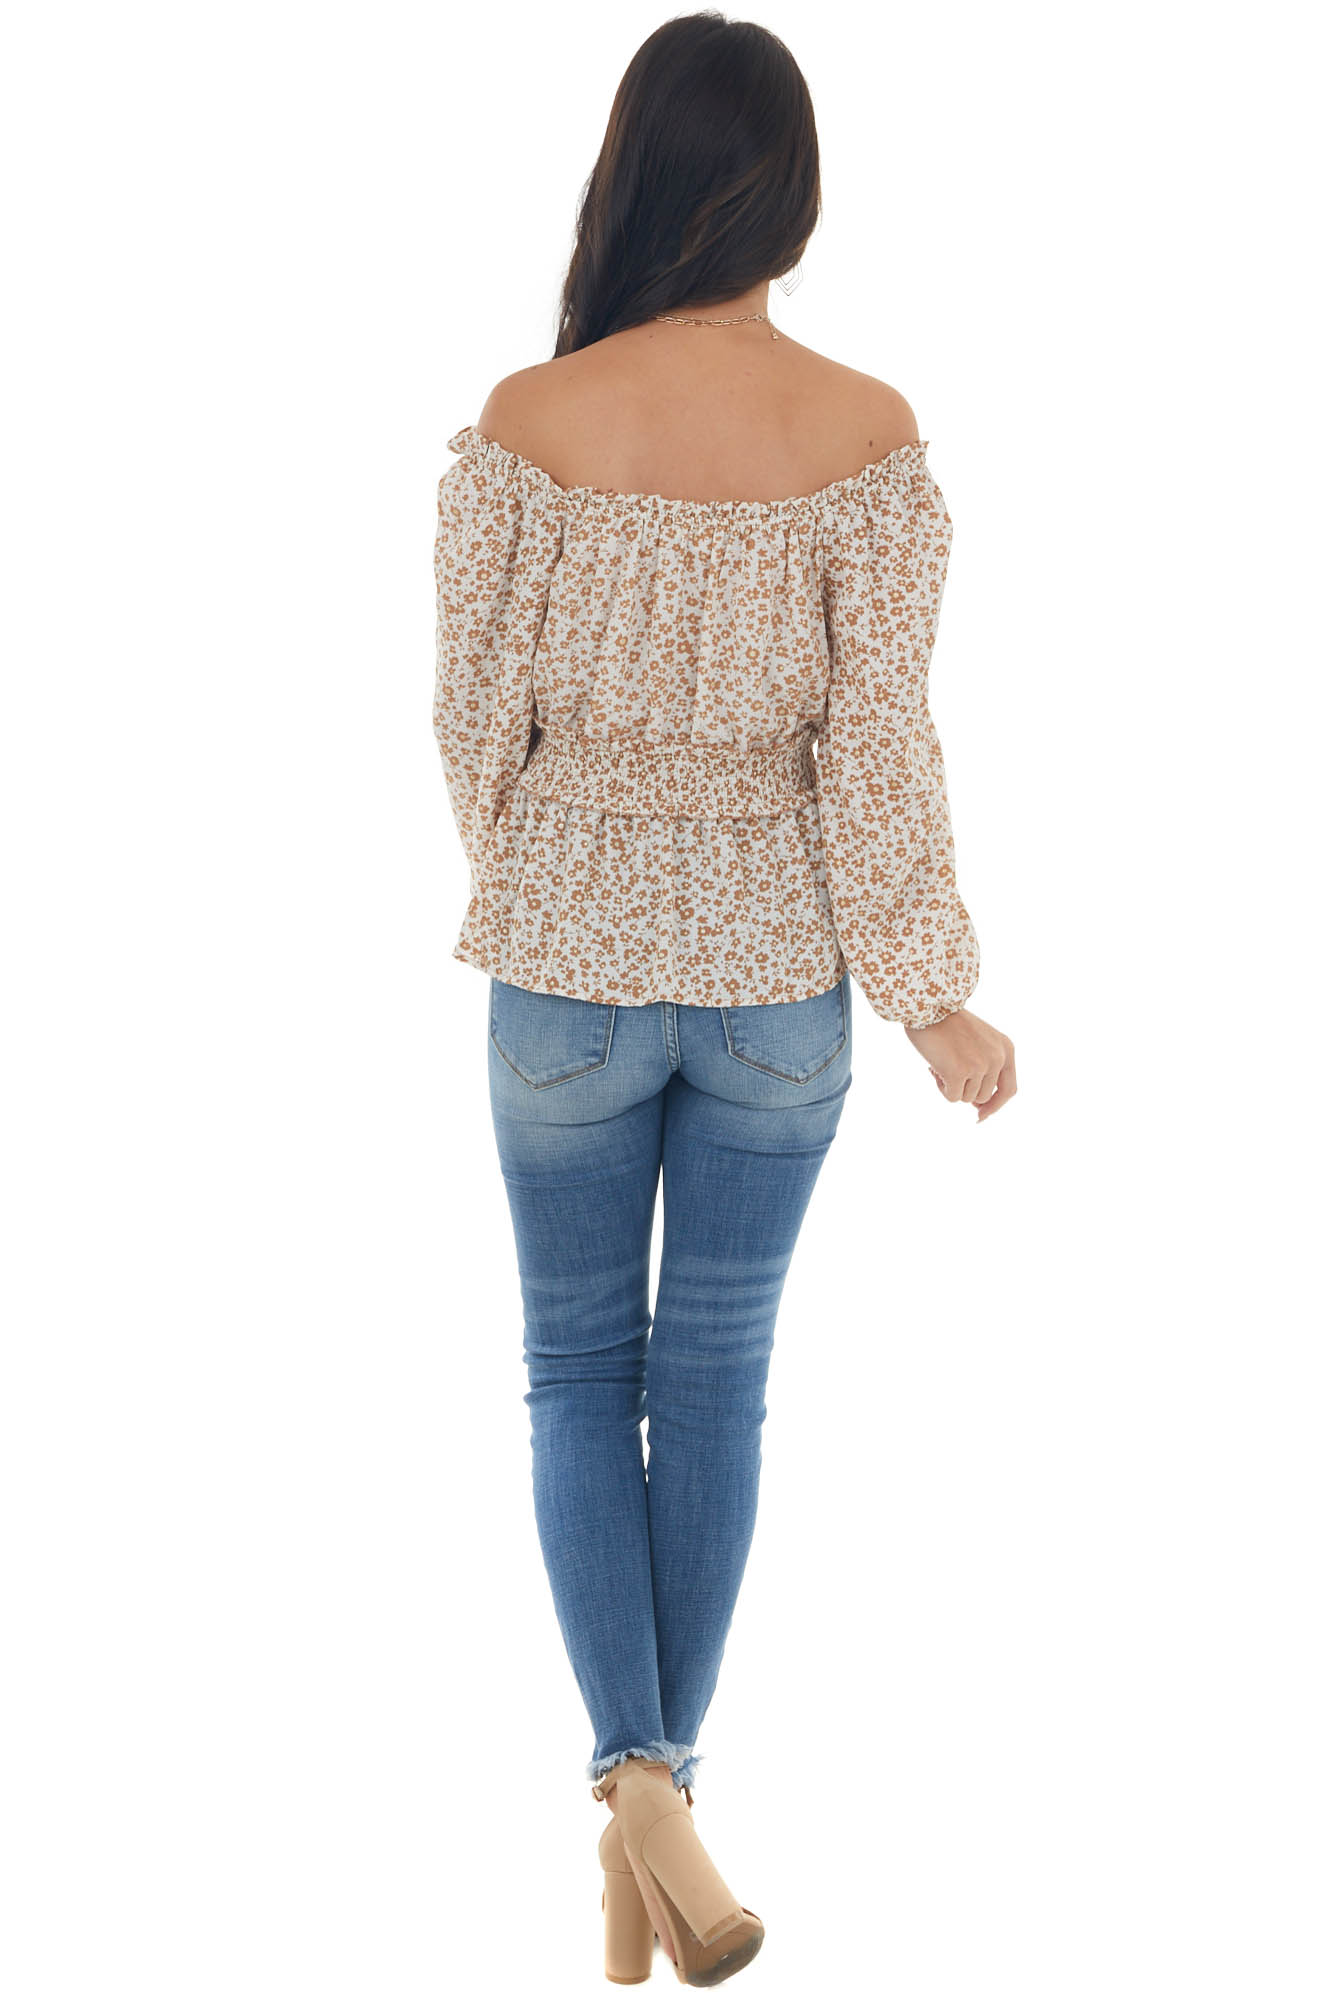 Ivory Glitter Ditsy Floral Smocked Peplum Top